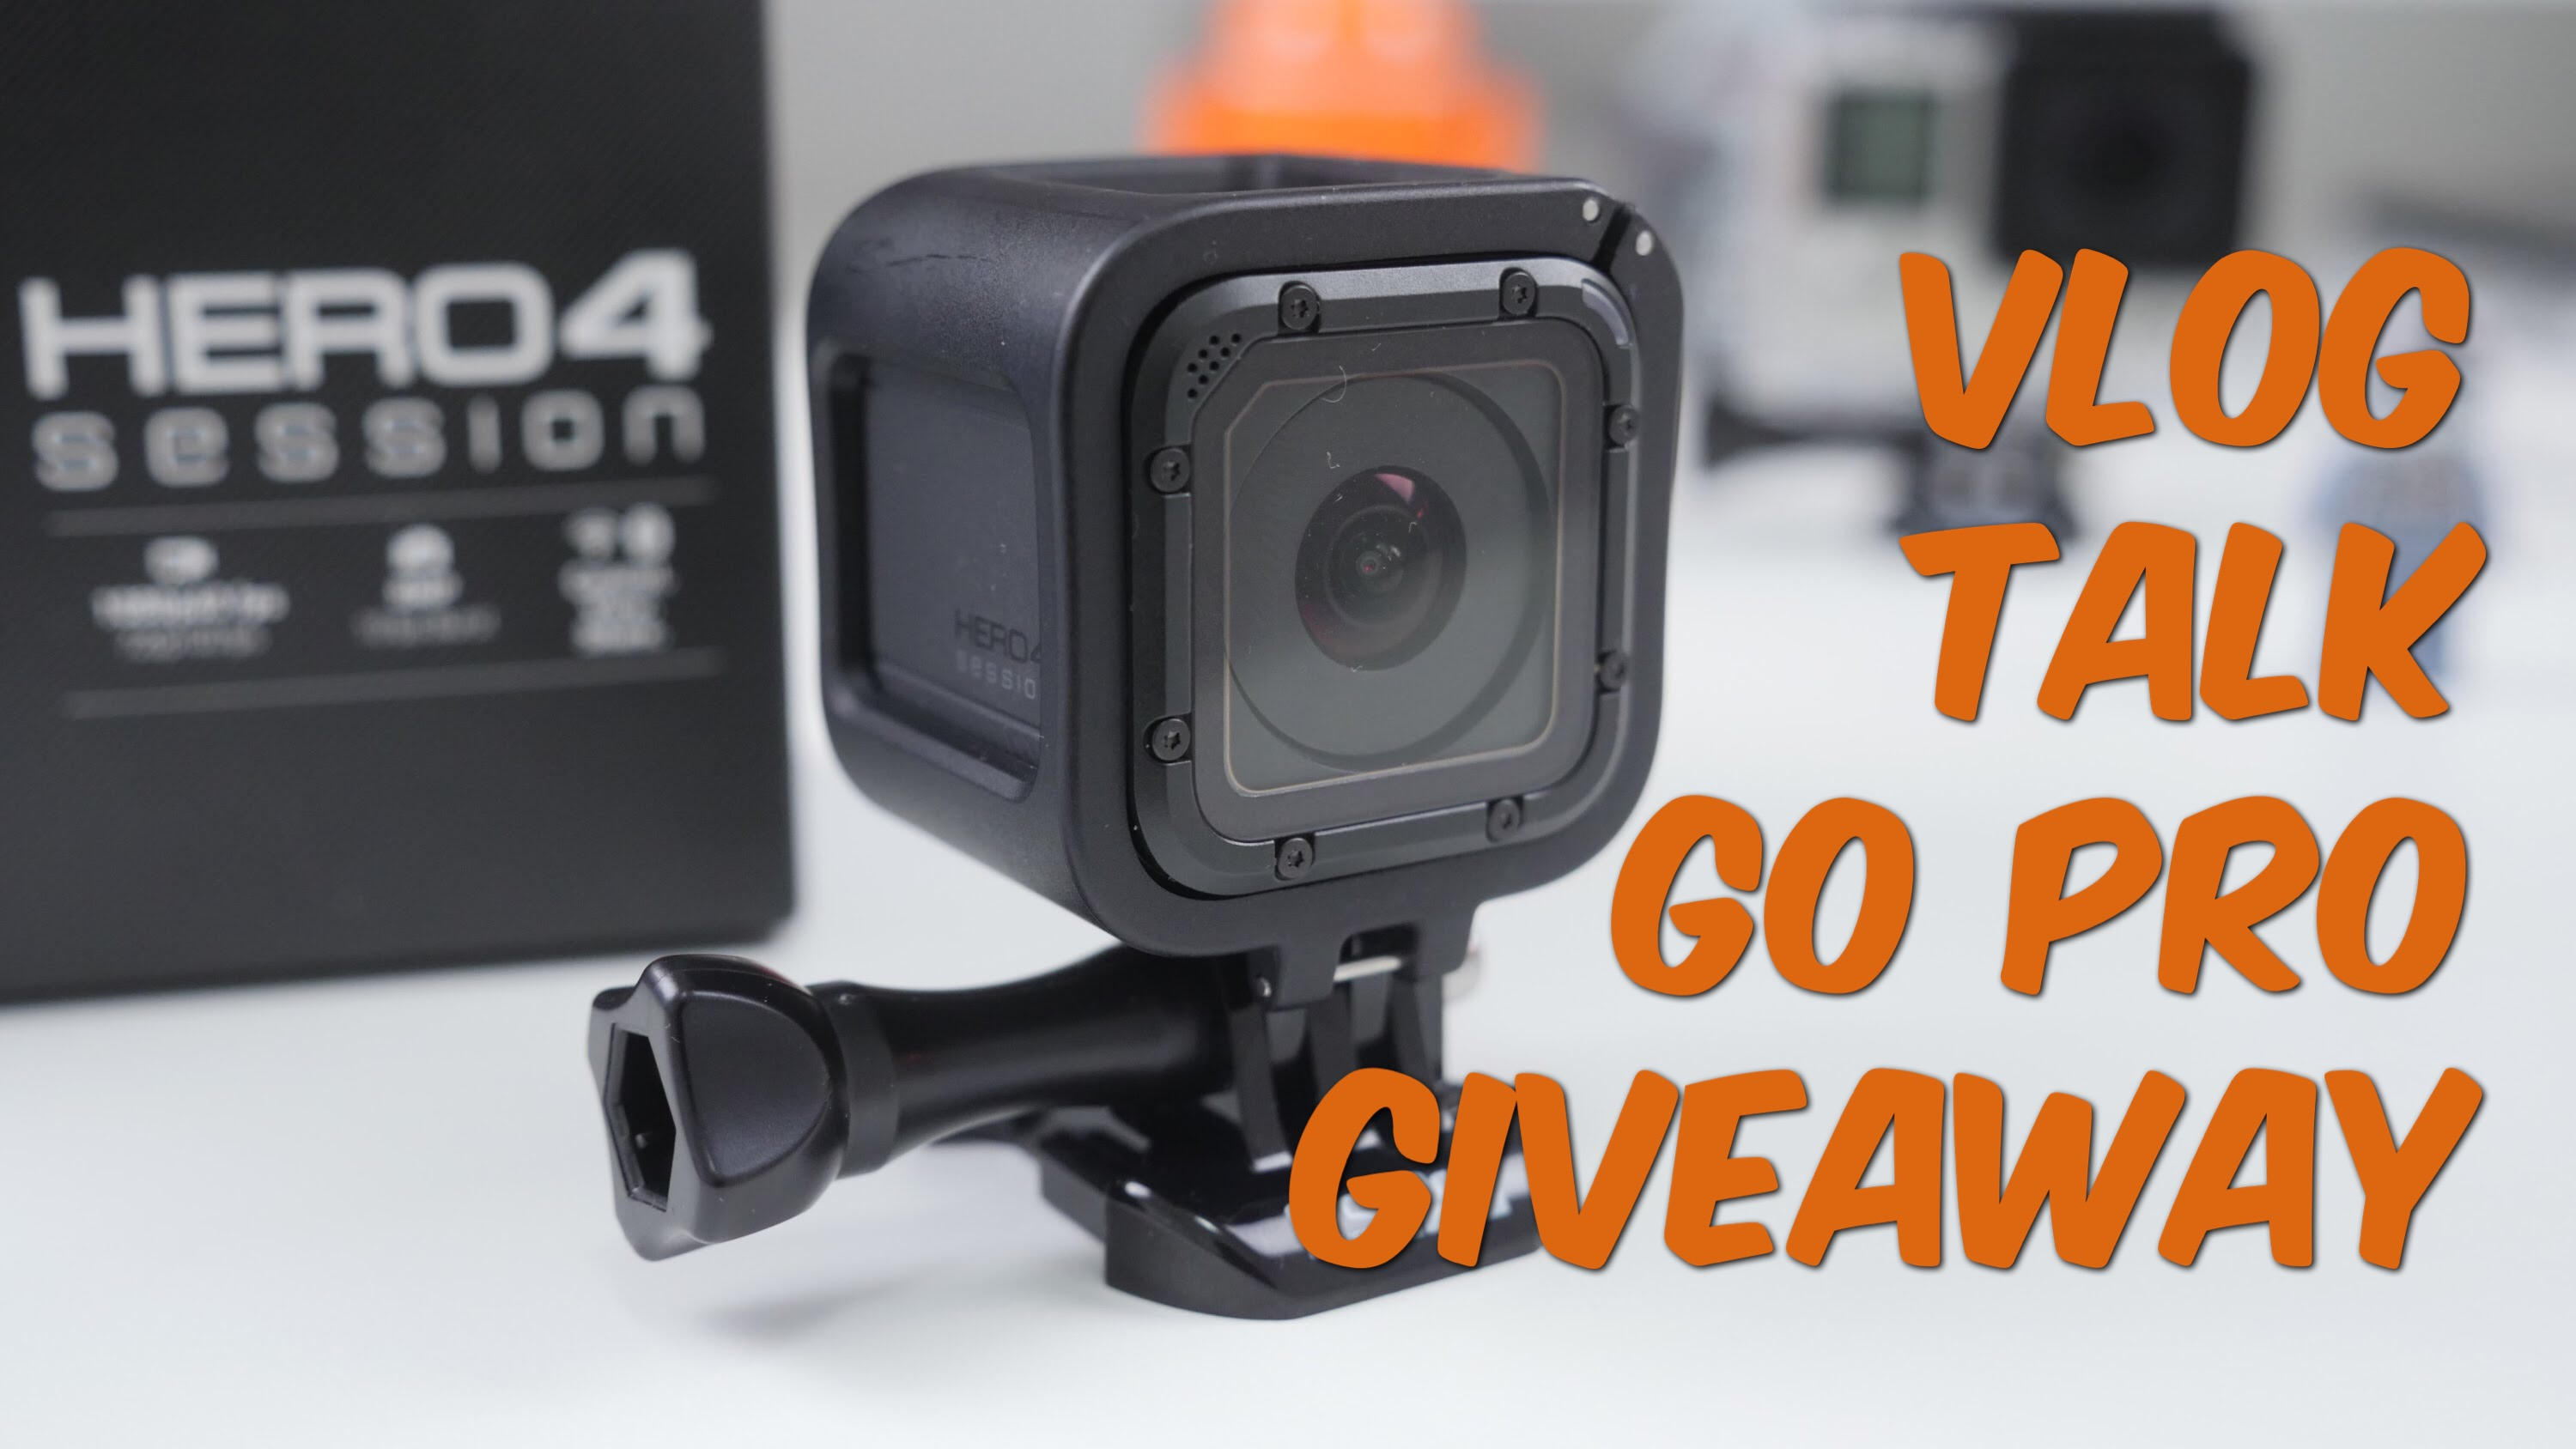 gopro sweepstakes win gopro hero4 session camera giveaway arena 6817